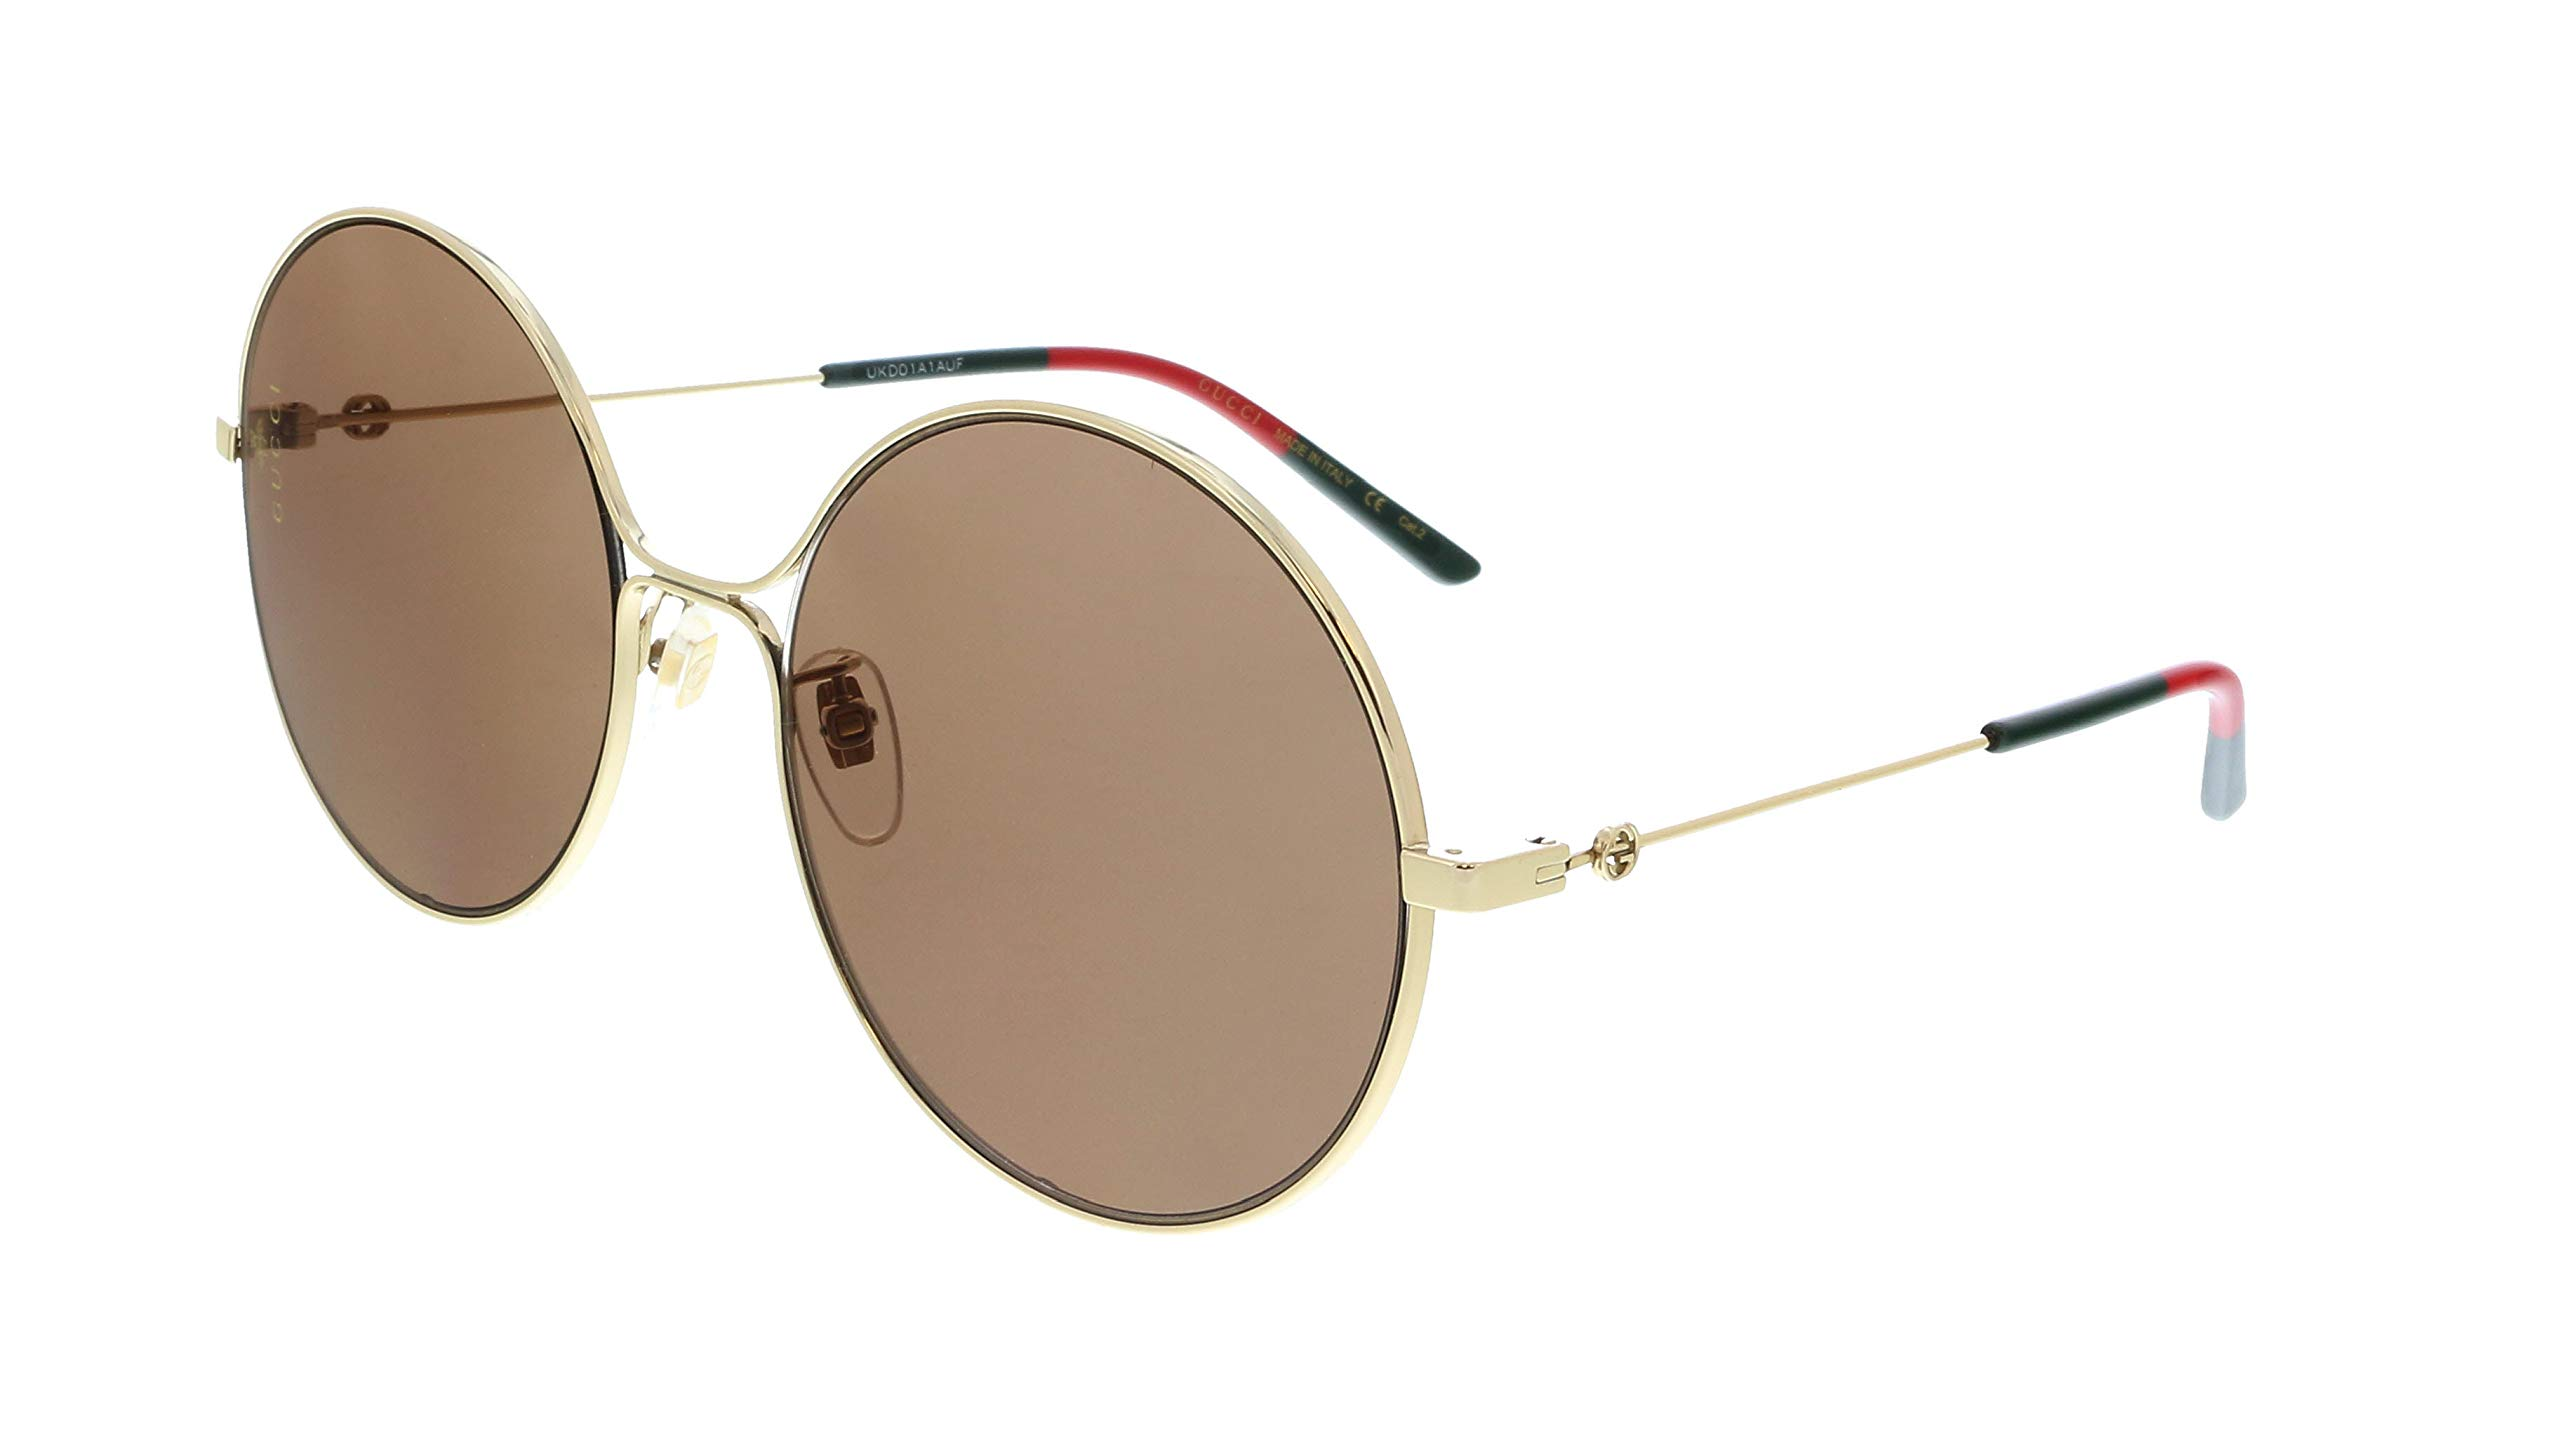 Gucci GG 0395S 002 Gold Metal Round Sunglasses Brown Lens by Gucci